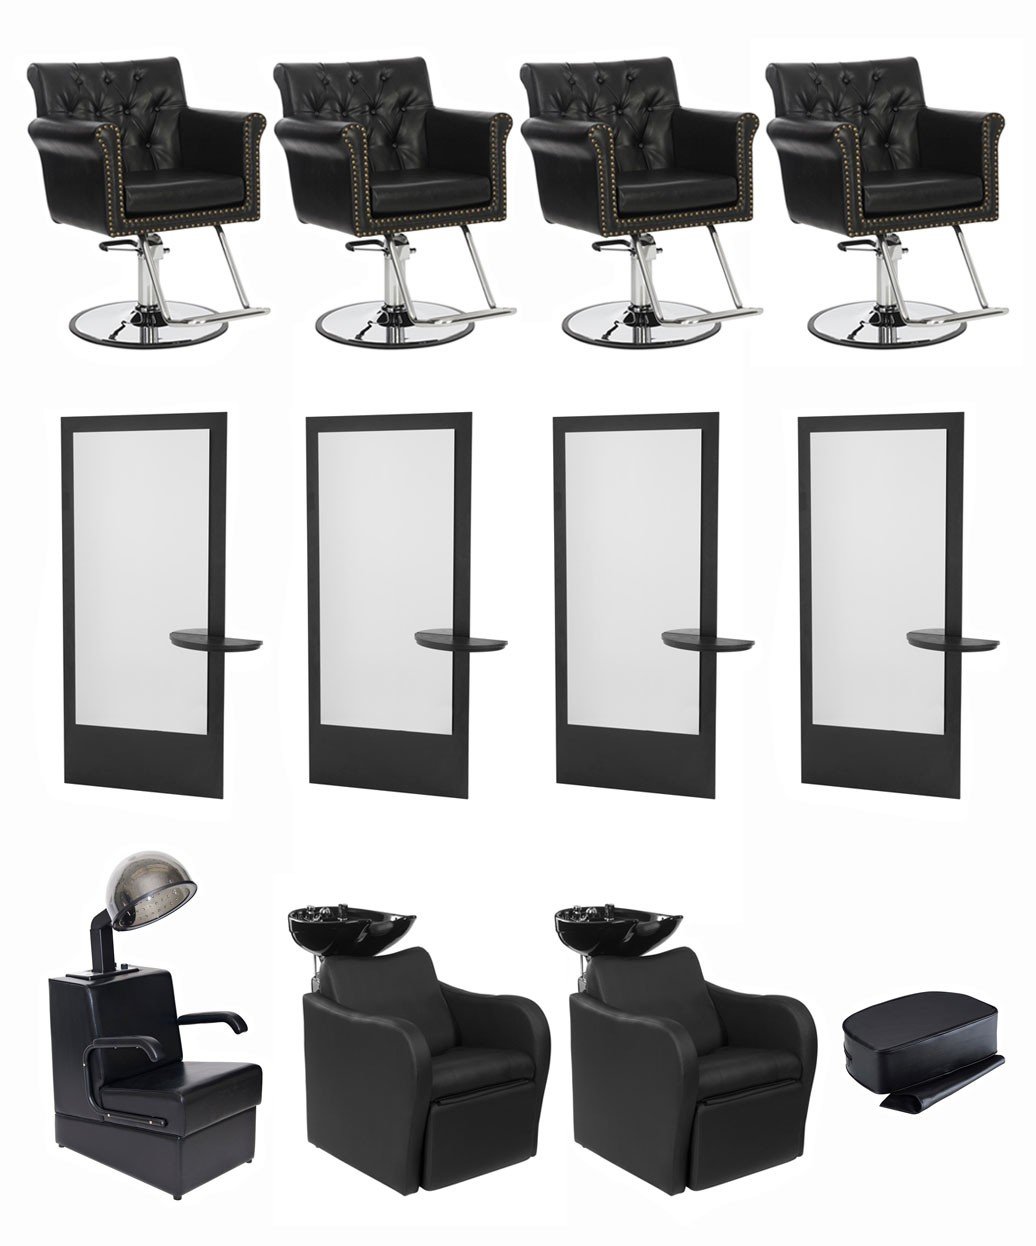 4 Operator Chelsea & Allegro Salon Package